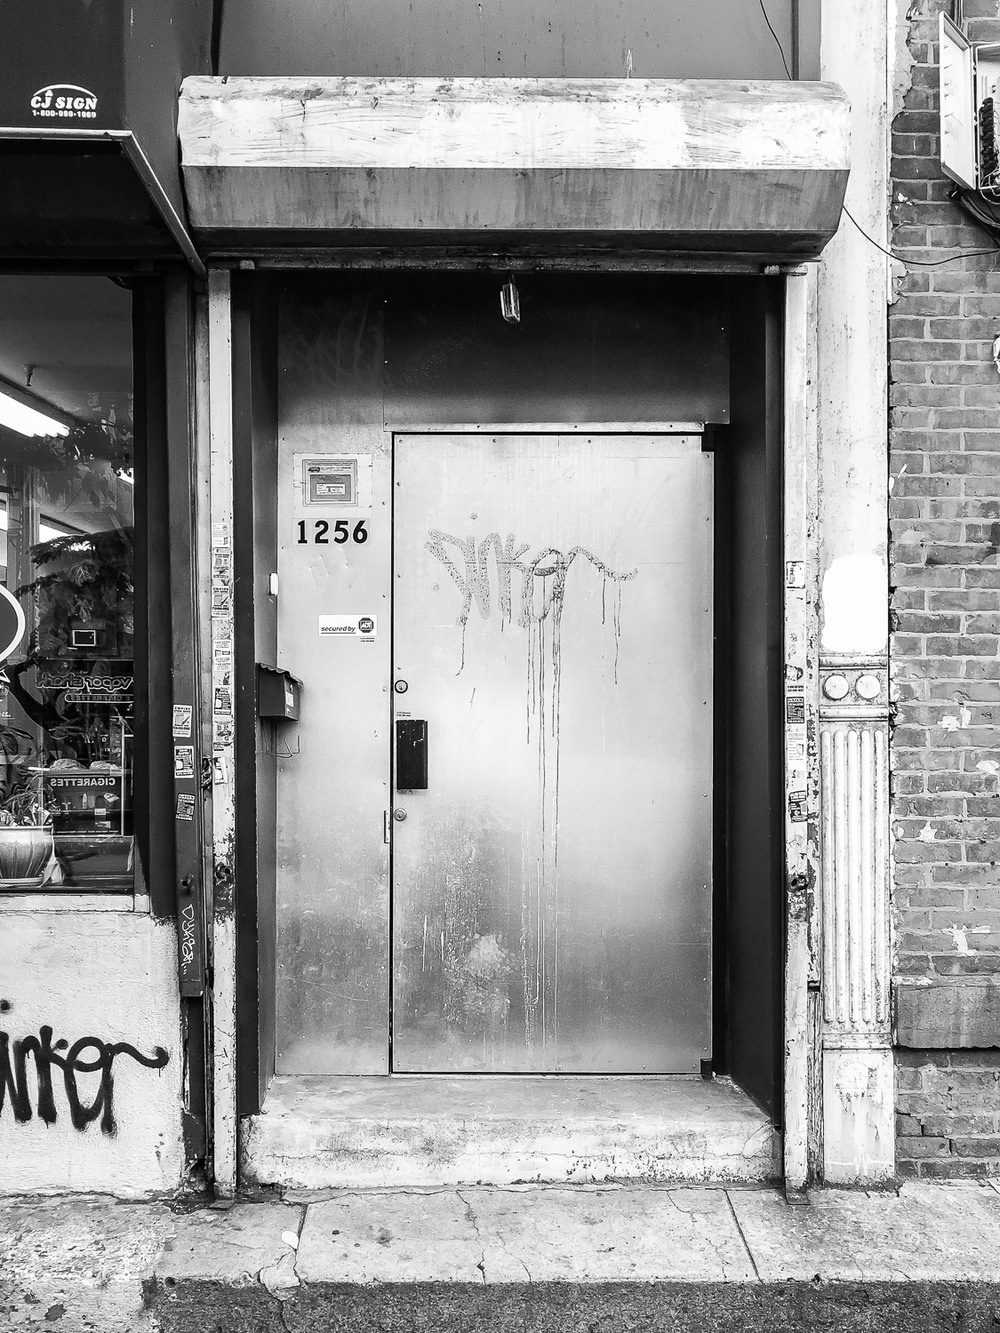 Graffiti Door to Andy Cross Art Studio Building in Bed Stuy Brooklyn NYC